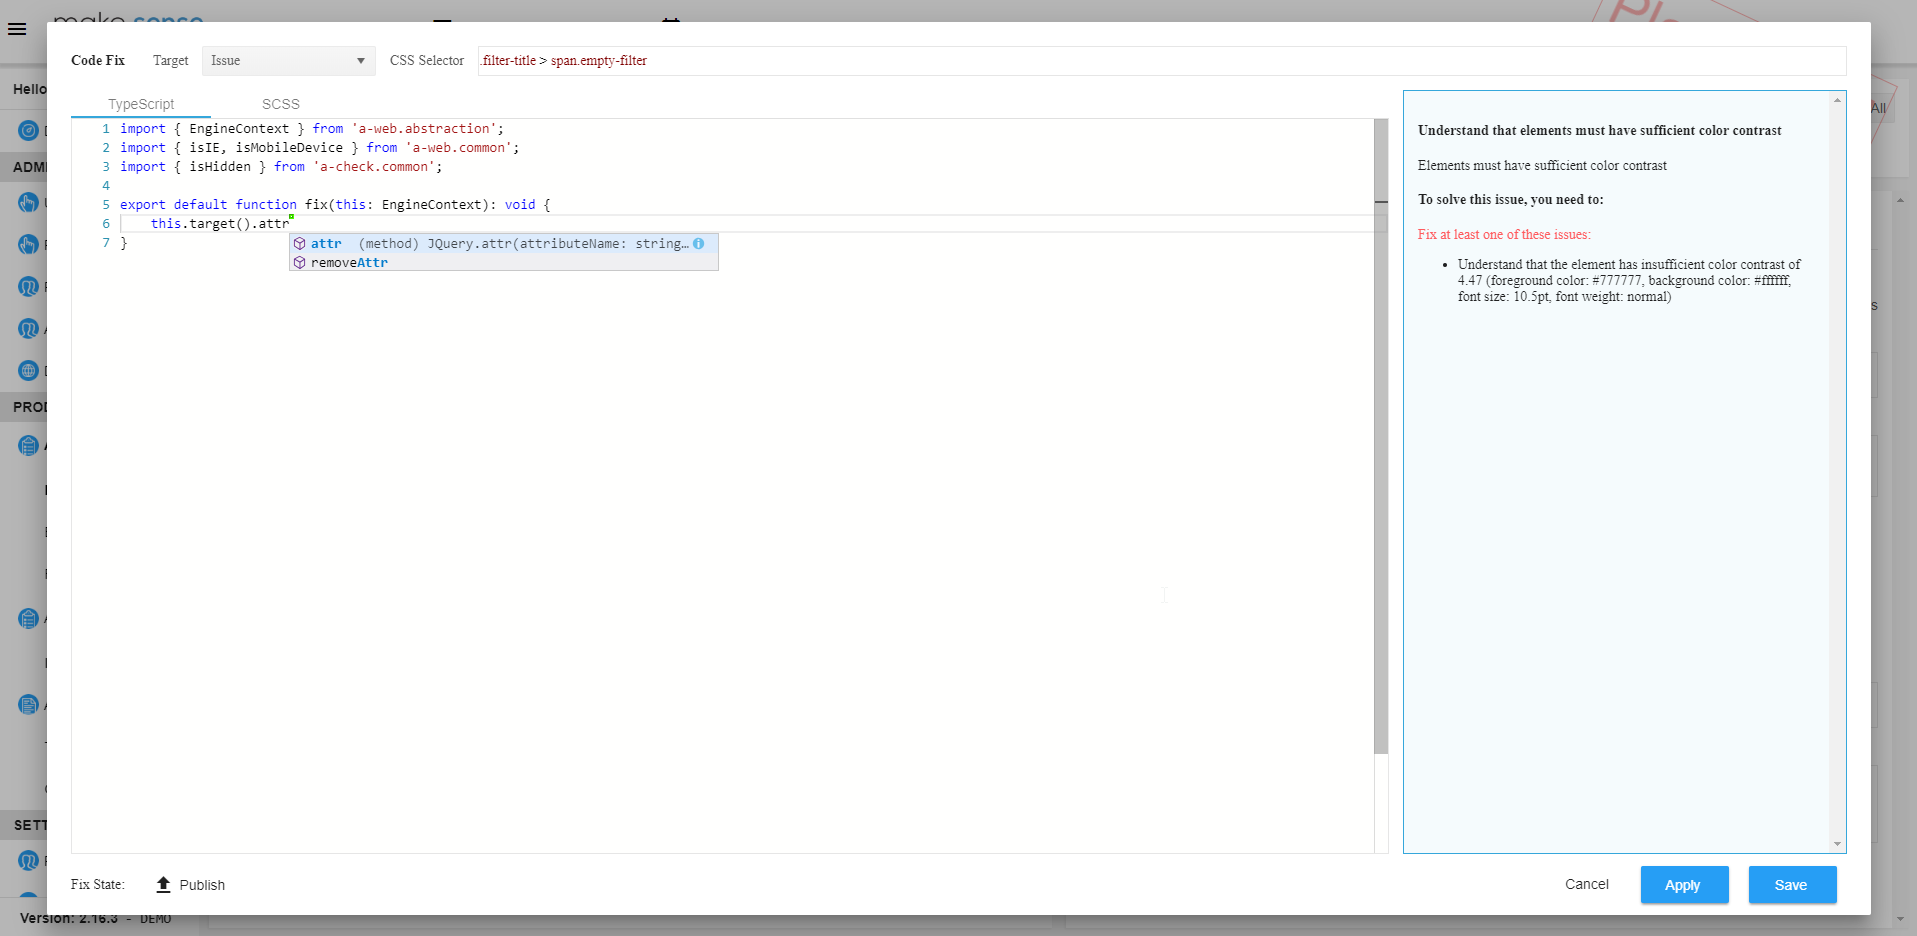 Image of the platform code editor for writing patches for selected issues.